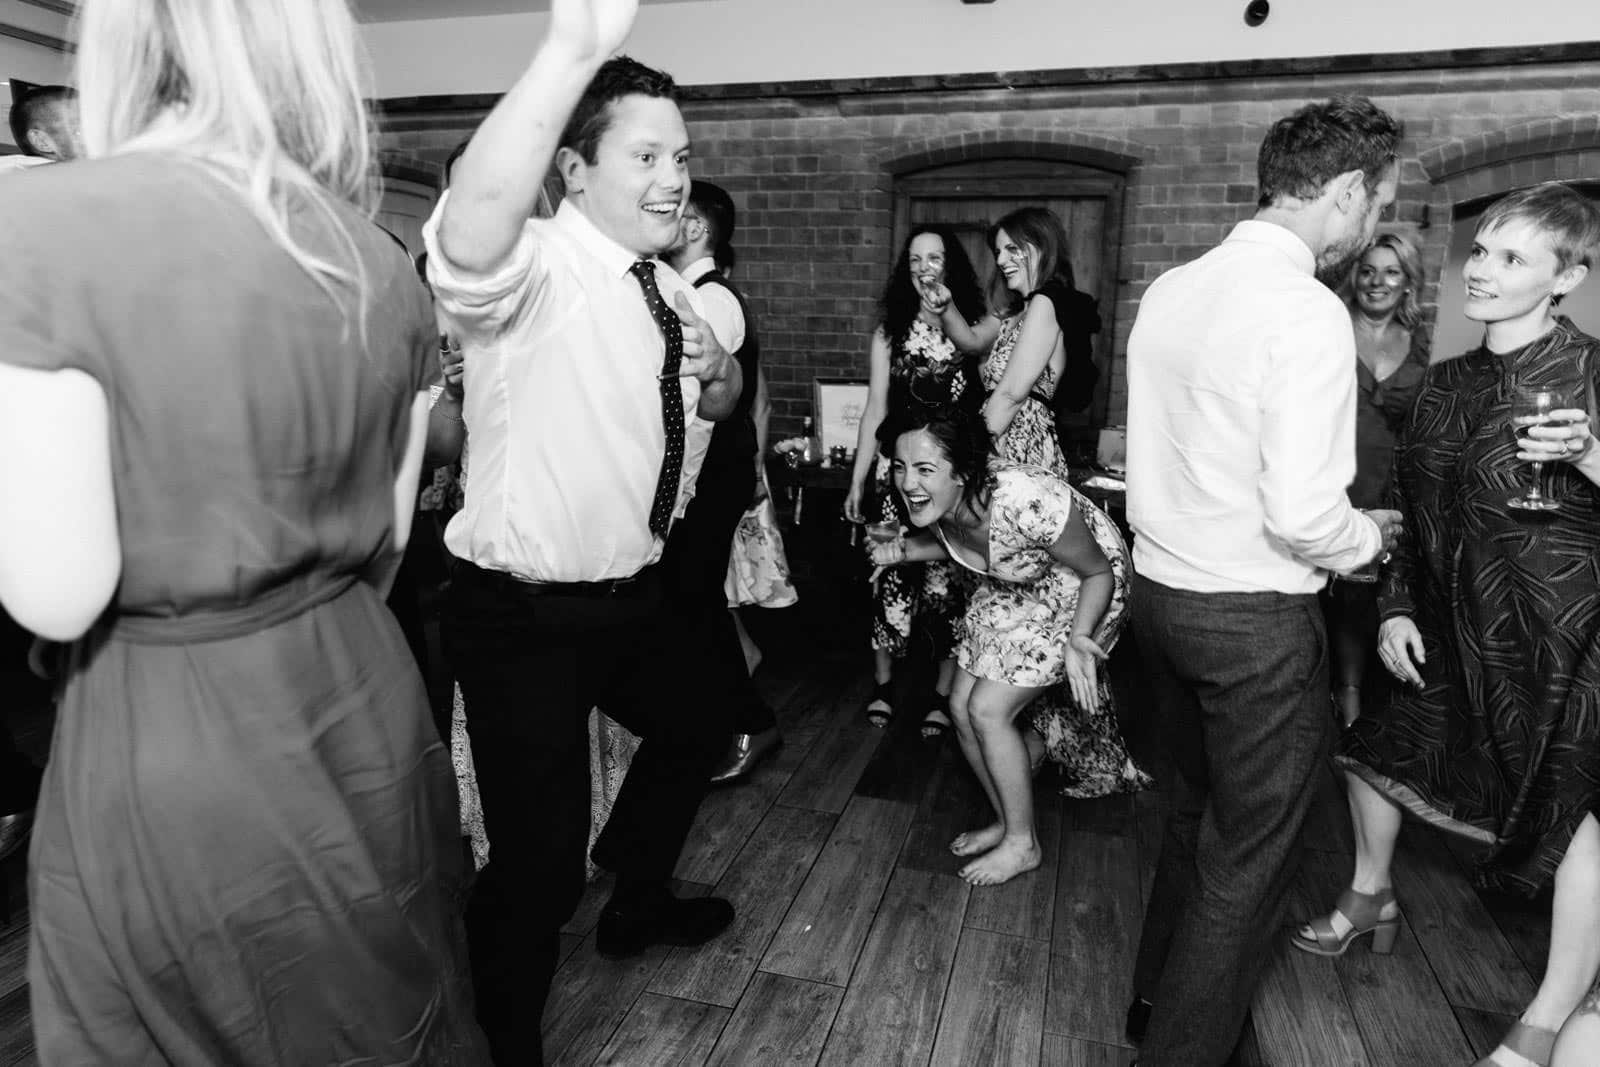 silly dancing antics at a wedding